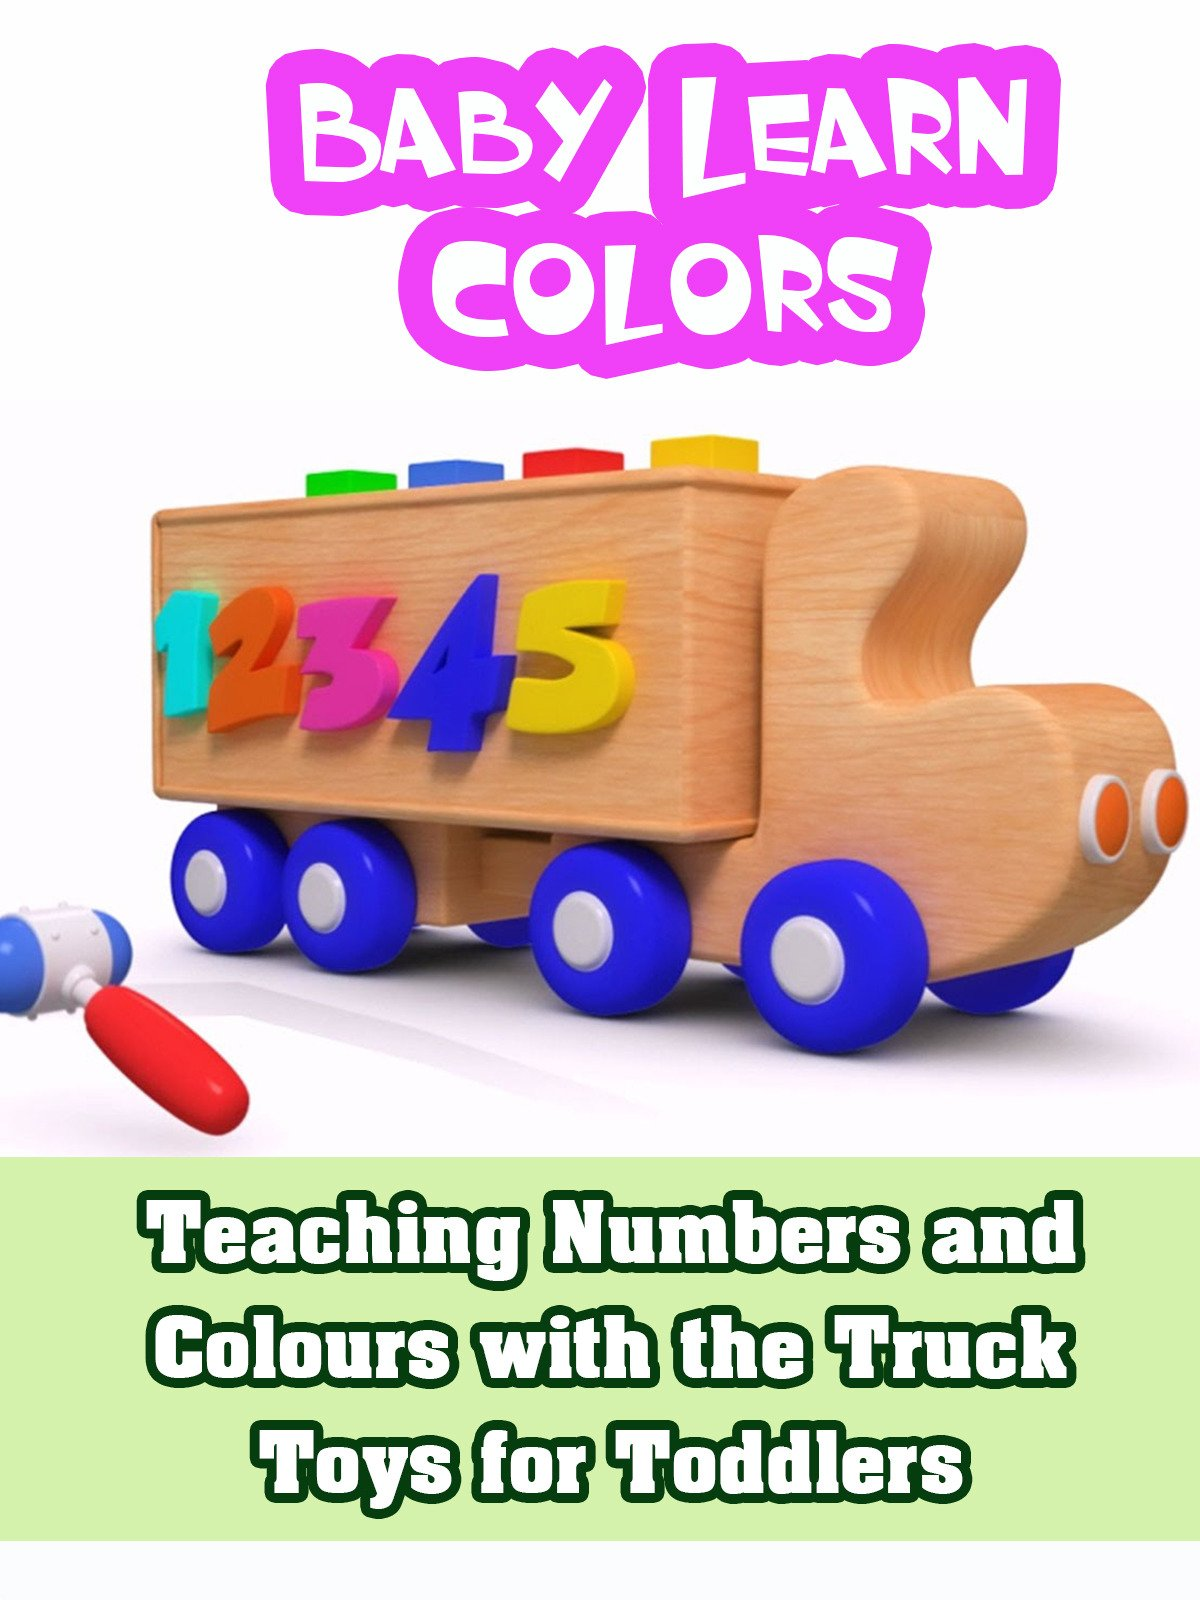 Teaching Numbers and Colours with the Truck Toys for Toddlers